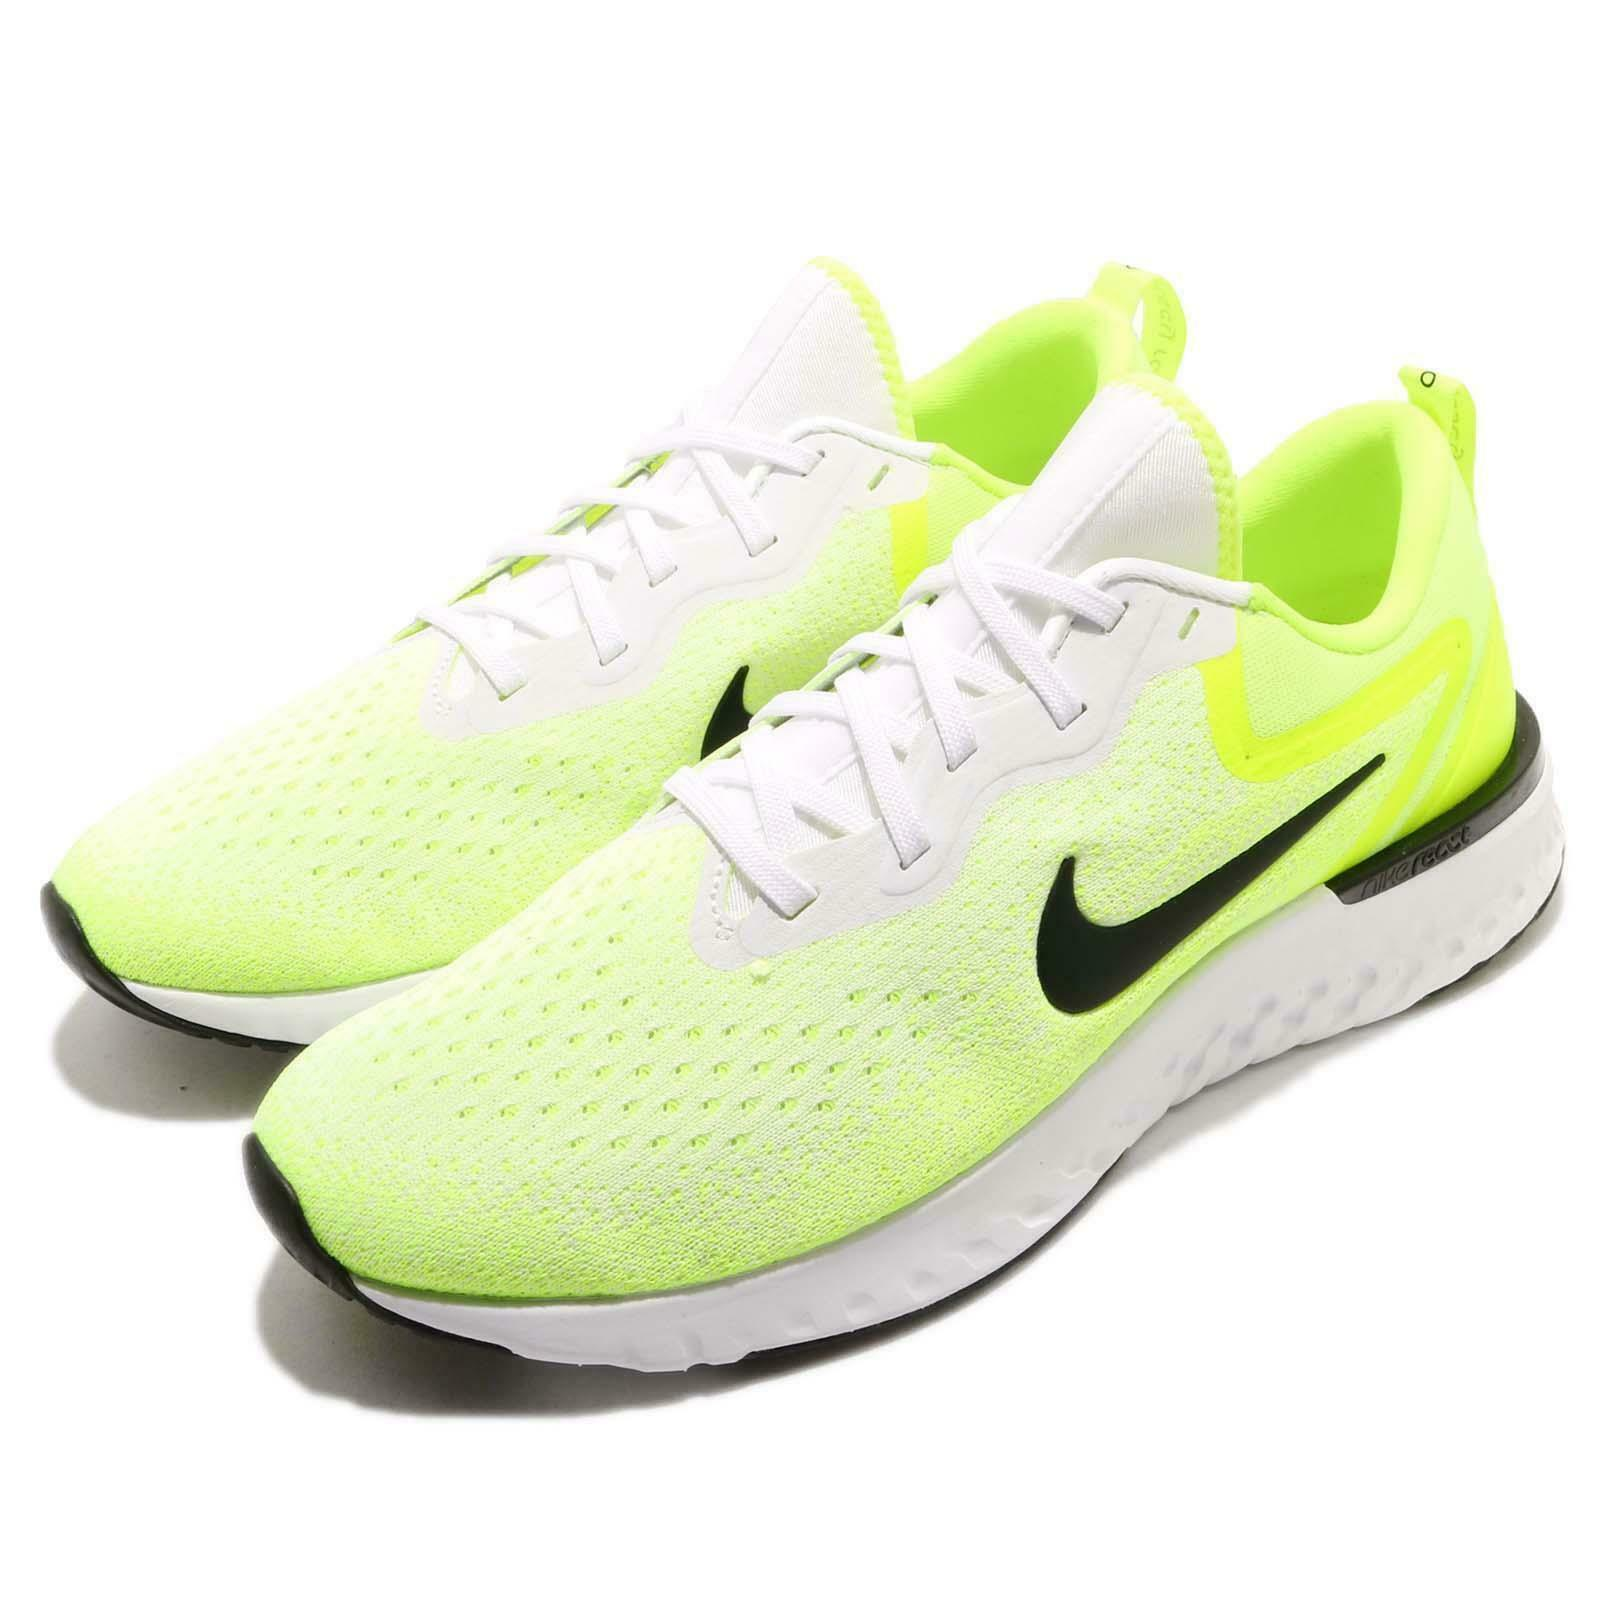 NIKE ODYSSEY REACT LOW MEN SHOES MUSTERD WHITE BLACK AO9819-103 SIZE 10.5 NEW